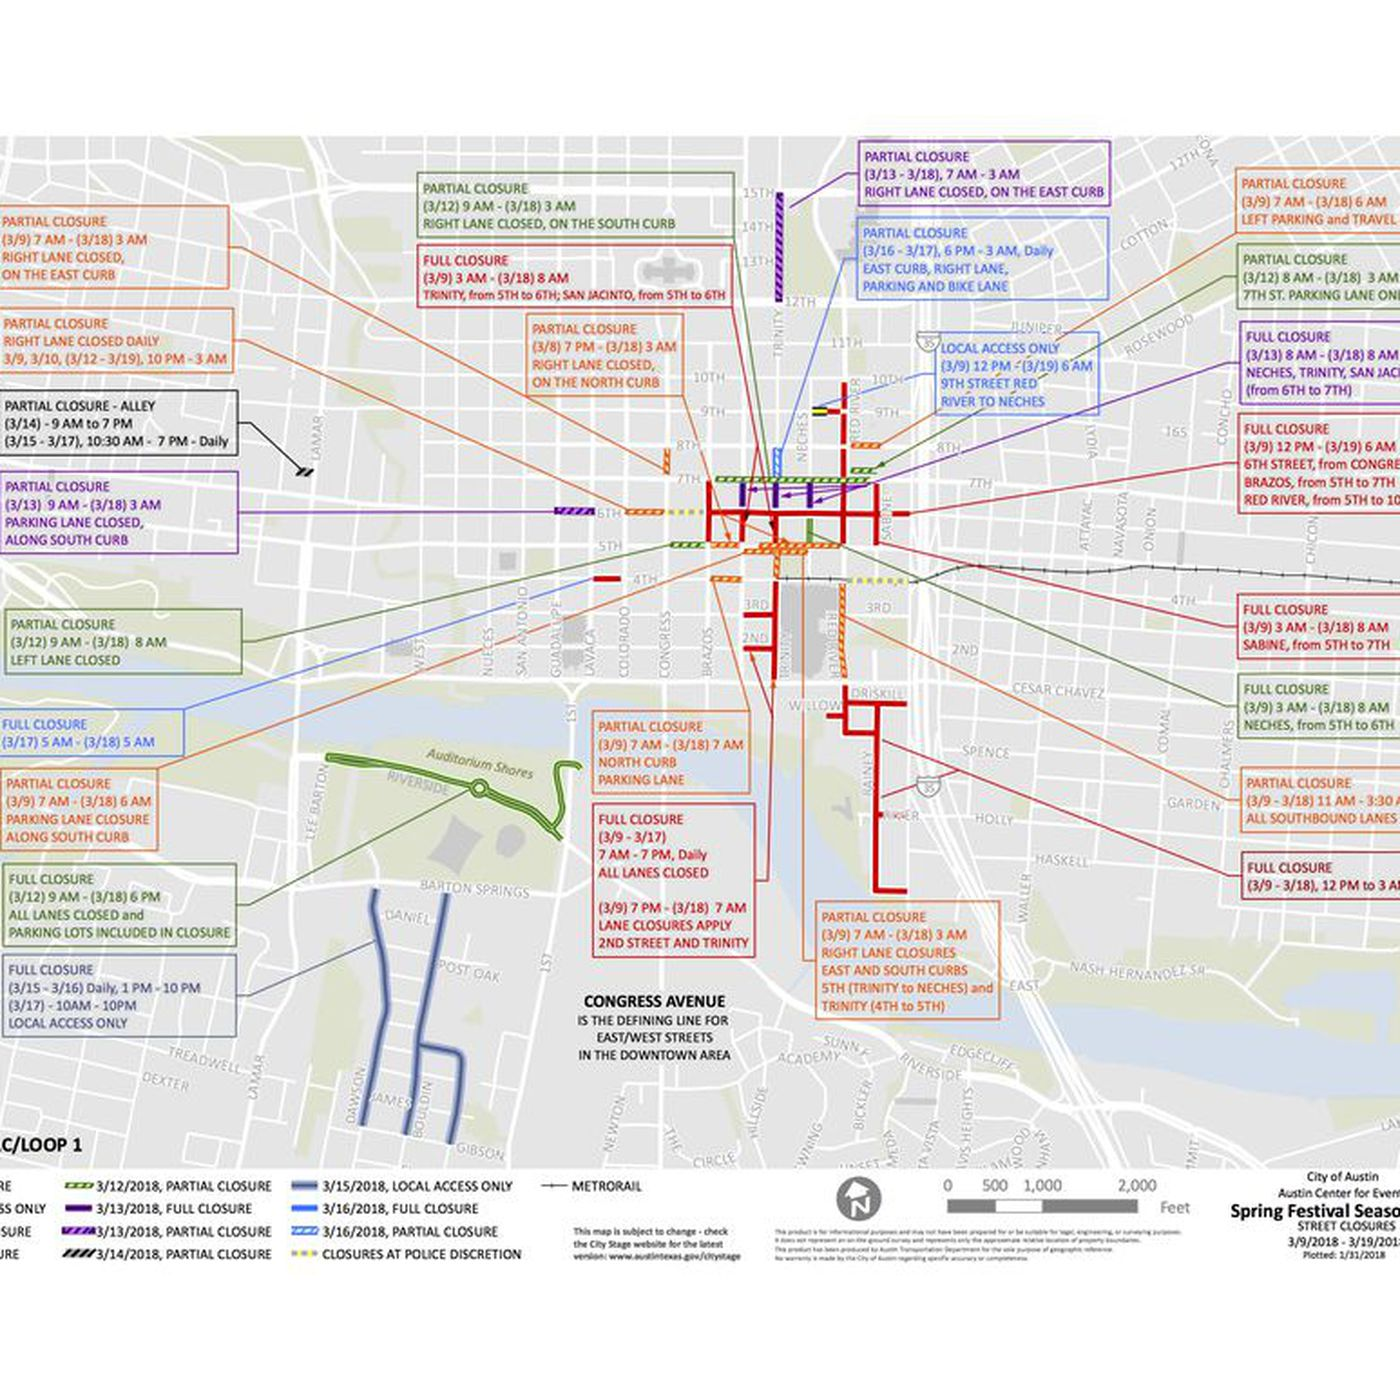 SXSW 2018: here is your street closures map - Curbed Austin on live map, linkedin map, business map, culture map, marketing map, communication map, research map, love map, fashion map, networking map, food map, inspiration map, maker faire map, london map, fun map, tv map, coachella map, itunes map, sasquatch map, interactive map,